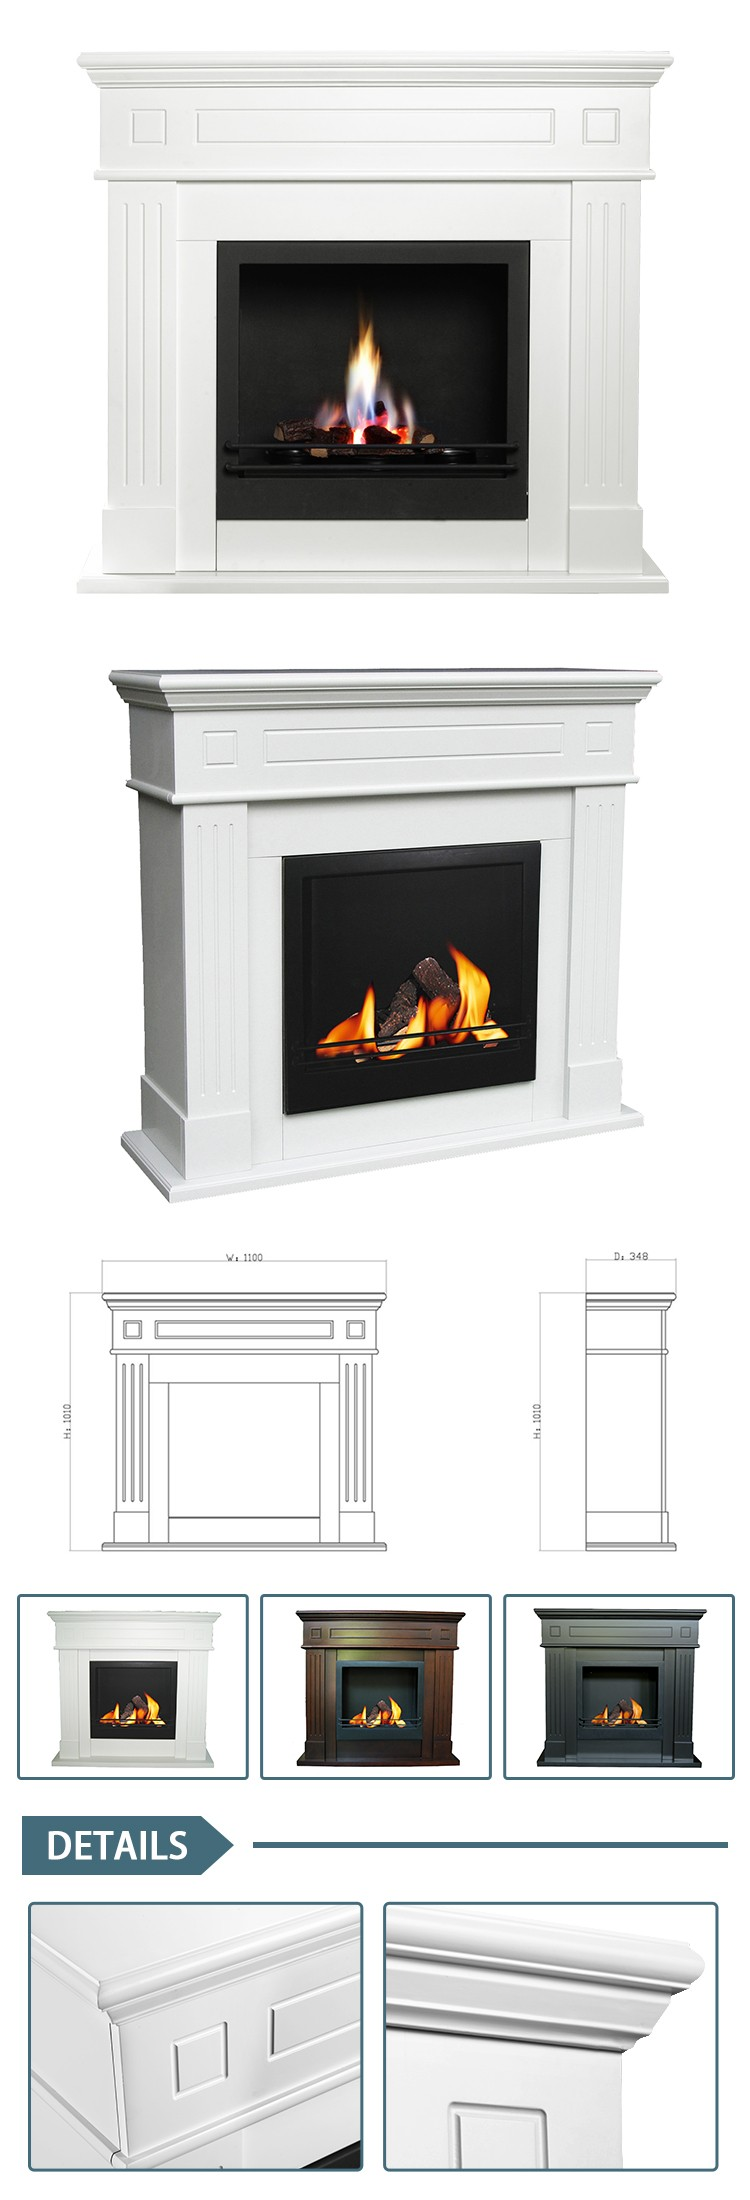 gs approved free standing denatured alcohol fireplace  buy  - gs approved free standing denatured alcohol fireplace